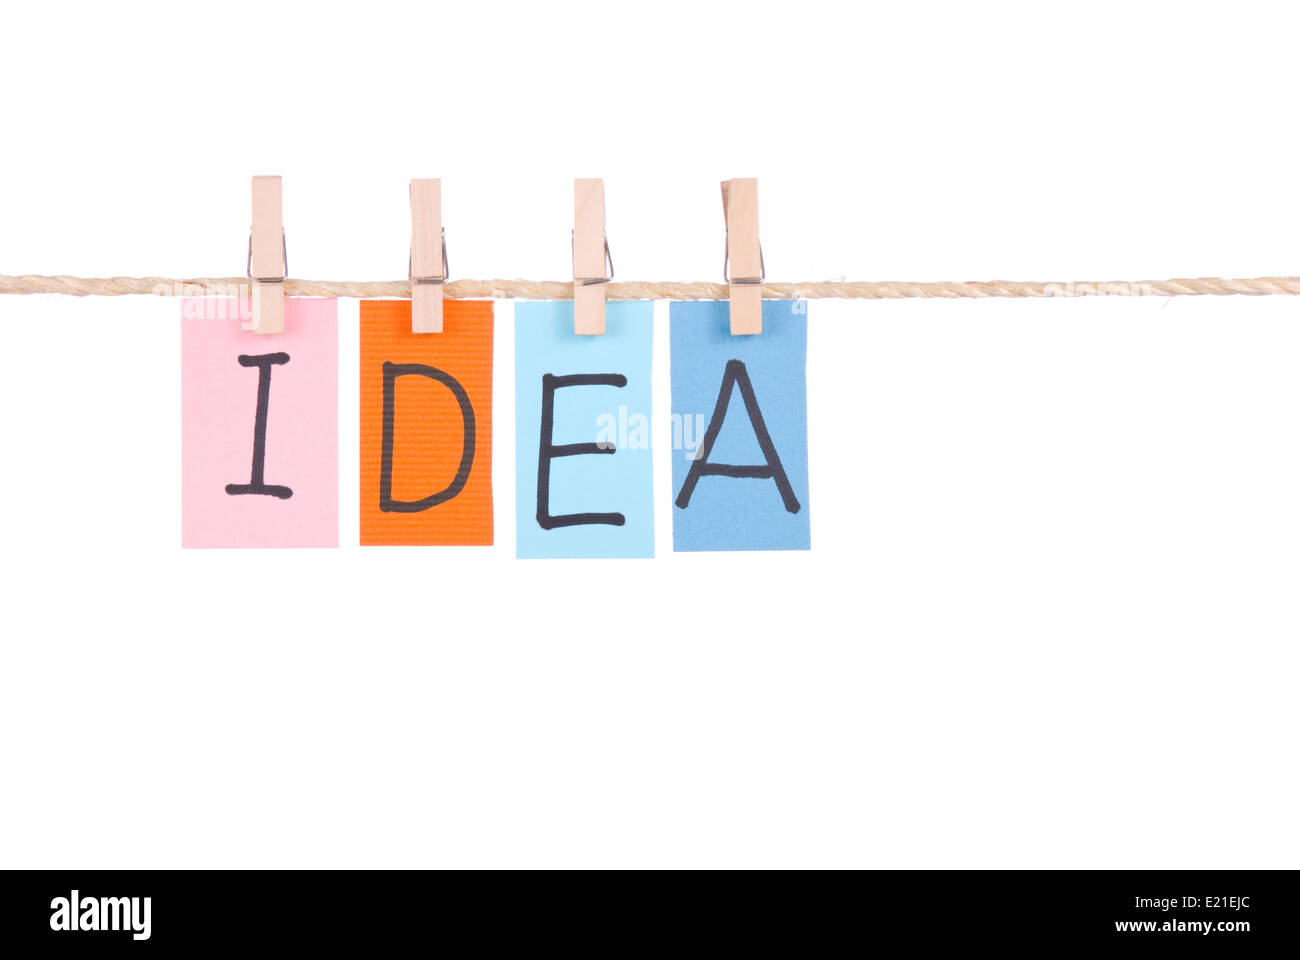 Idea, Colorful words hang on rope - Stock Image